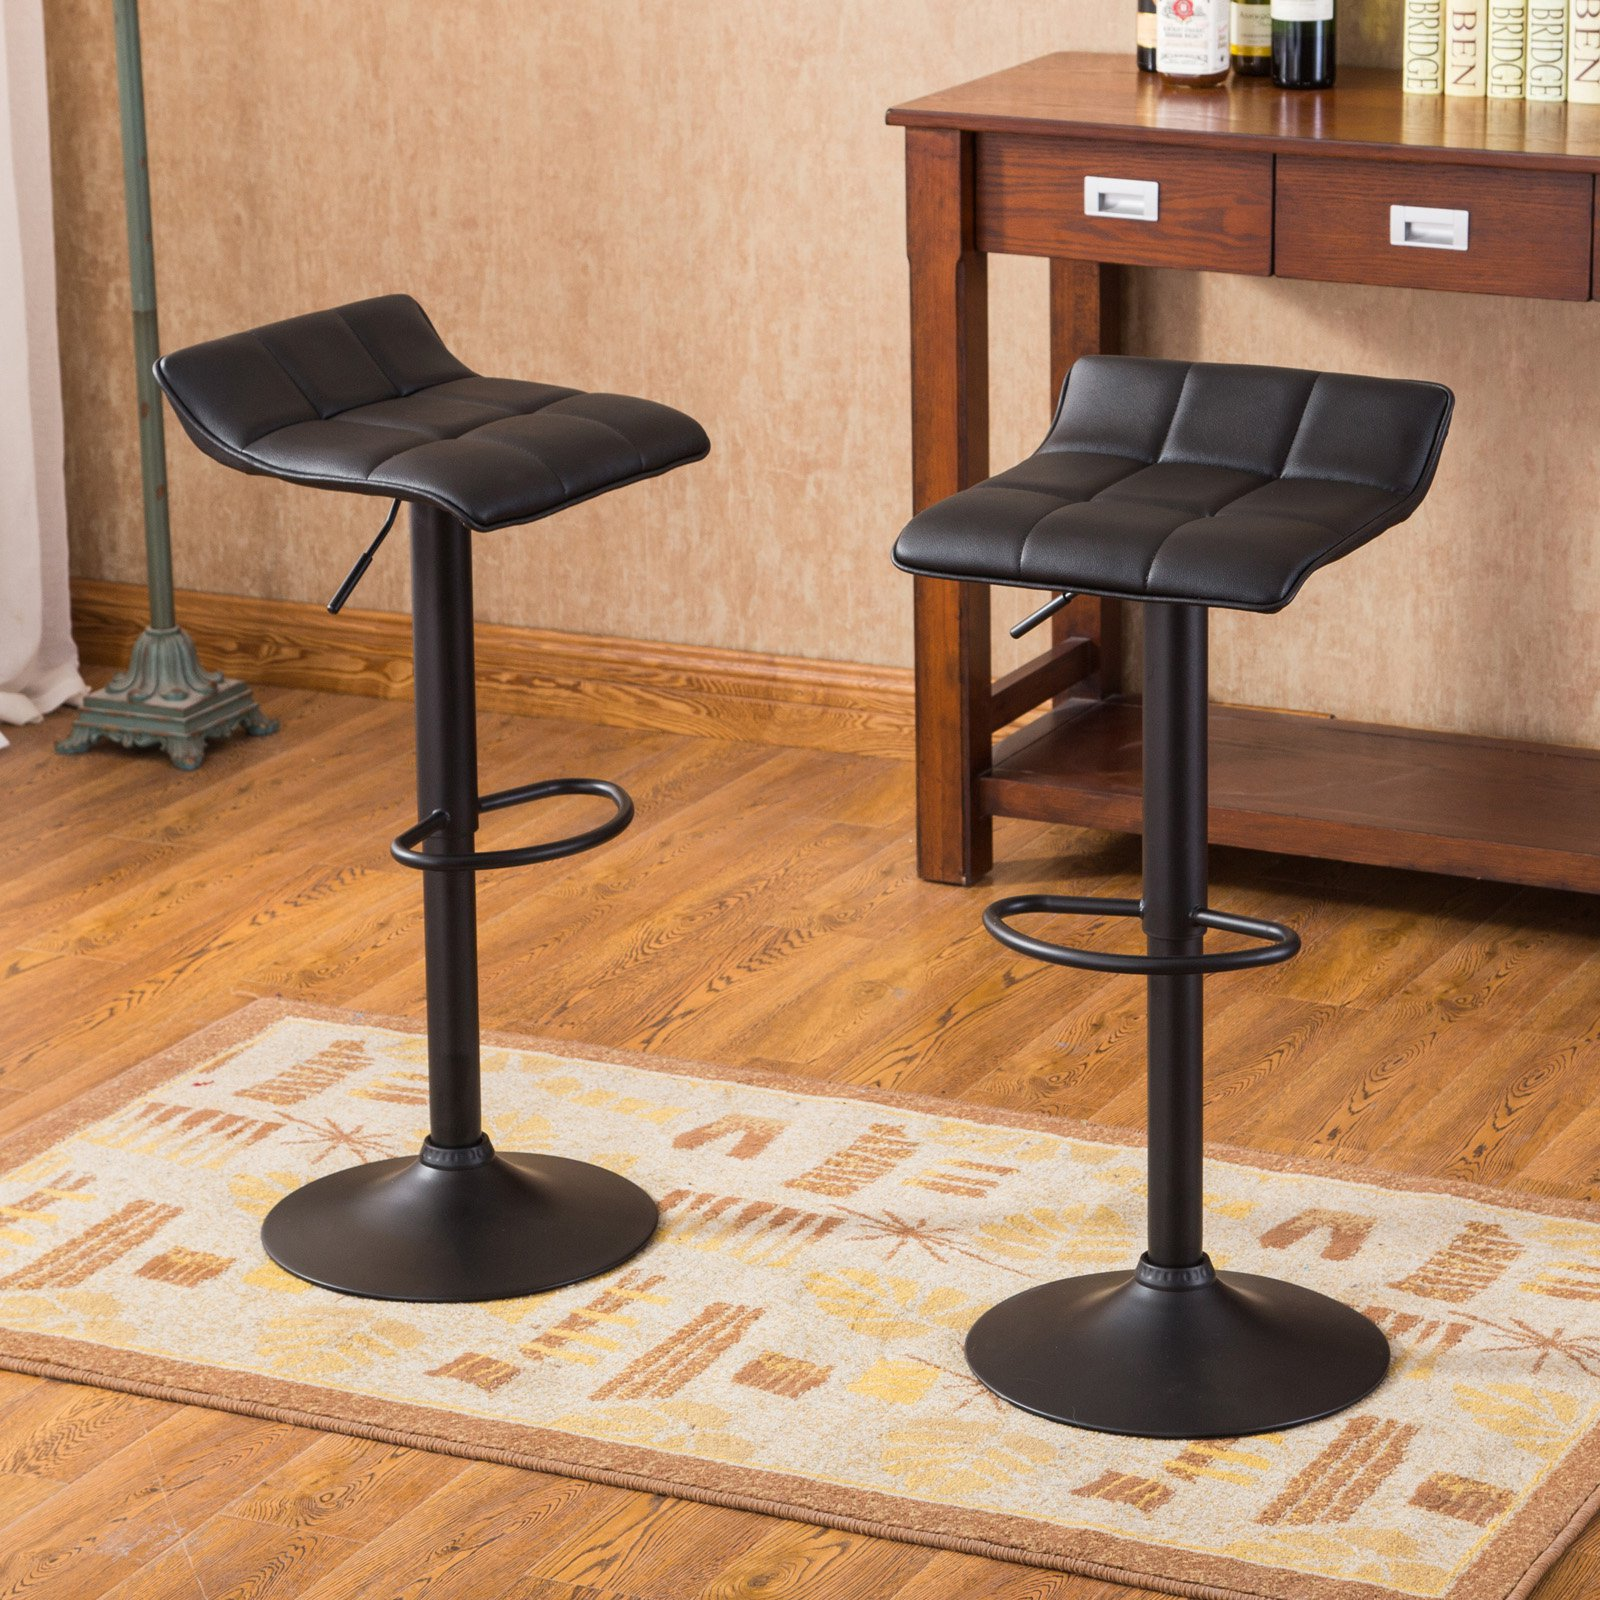 Roundhill Furniture Belham Swivel Black Bonded Leather Adjustable Bar Stool,  Set Of 2